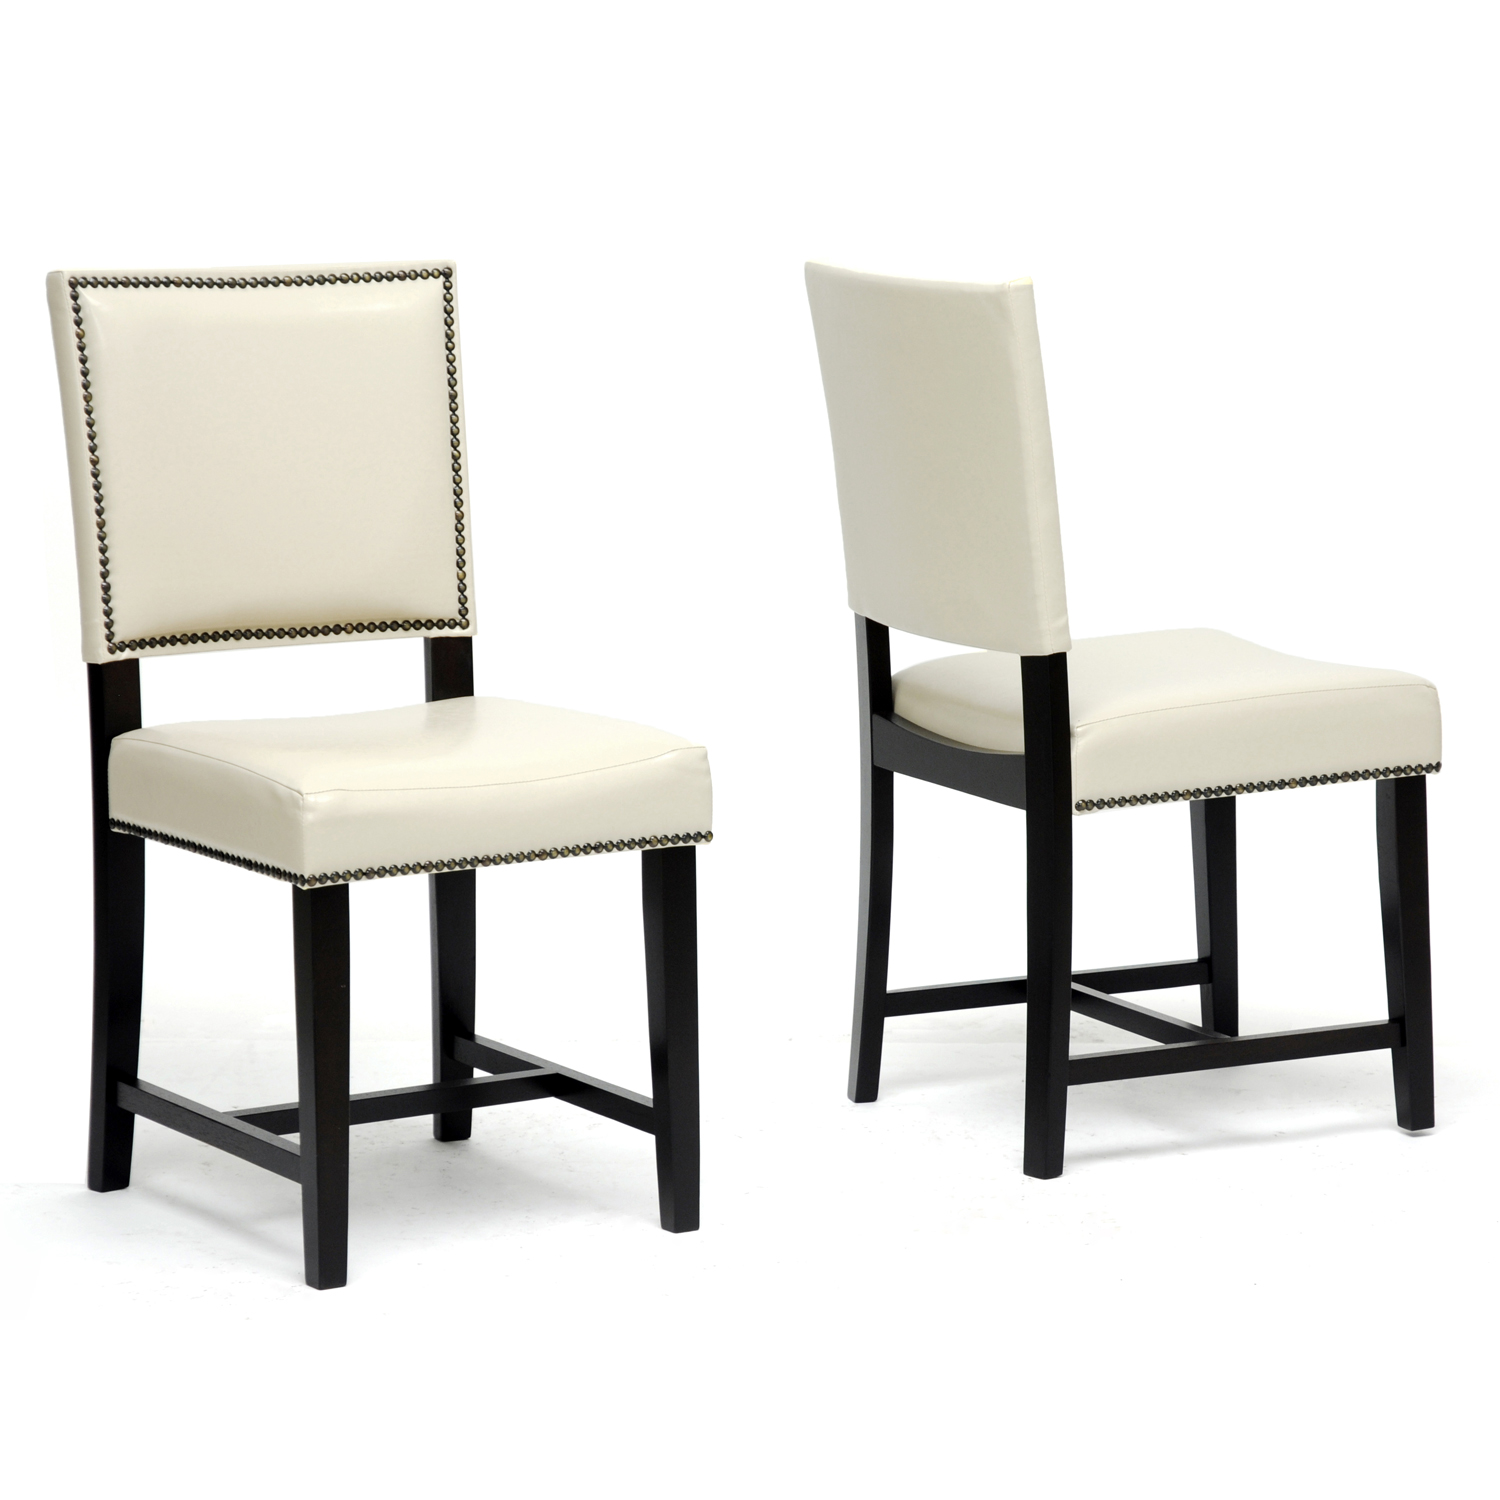 White Upholstered Dining Chair With Nailheads Together With Amusing Backs  And Sophisticated Design